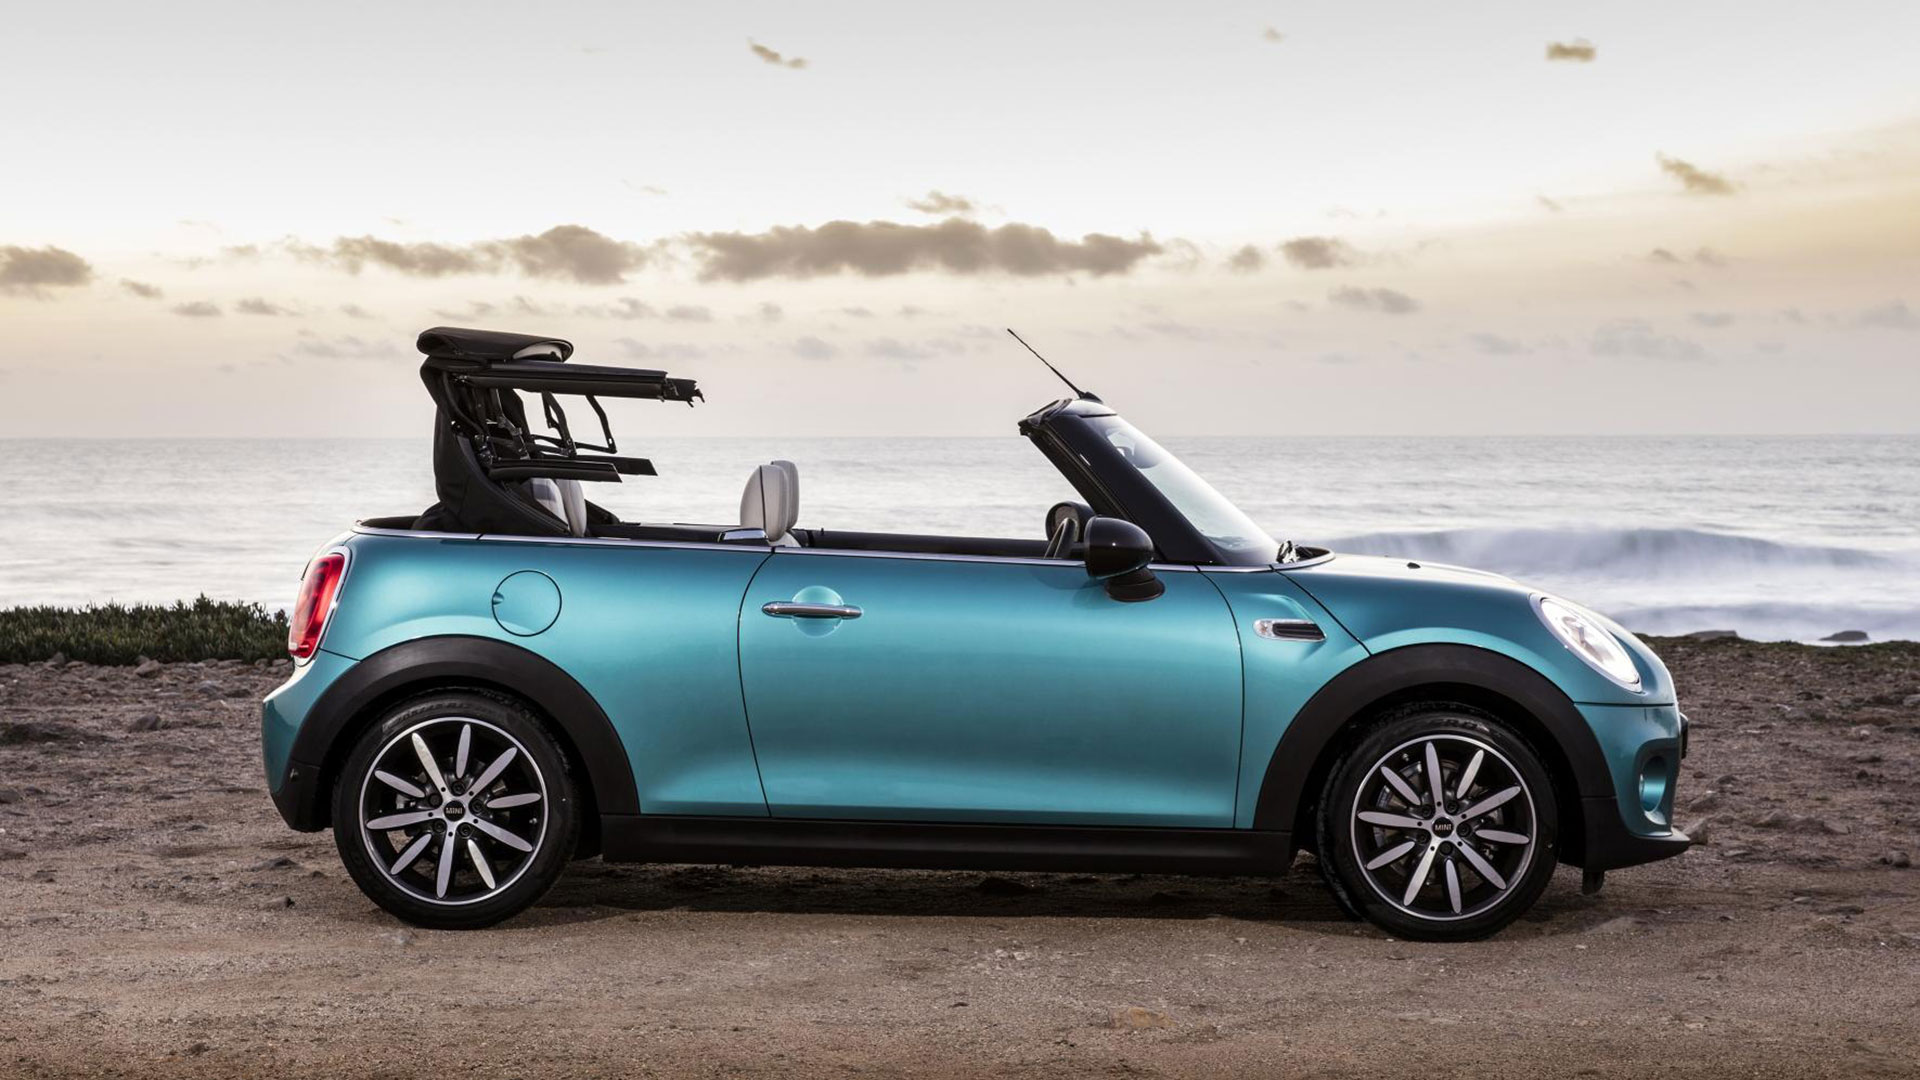 Convertible Center Avis New Used Mini Convertible Cars For Sale Auto Trader